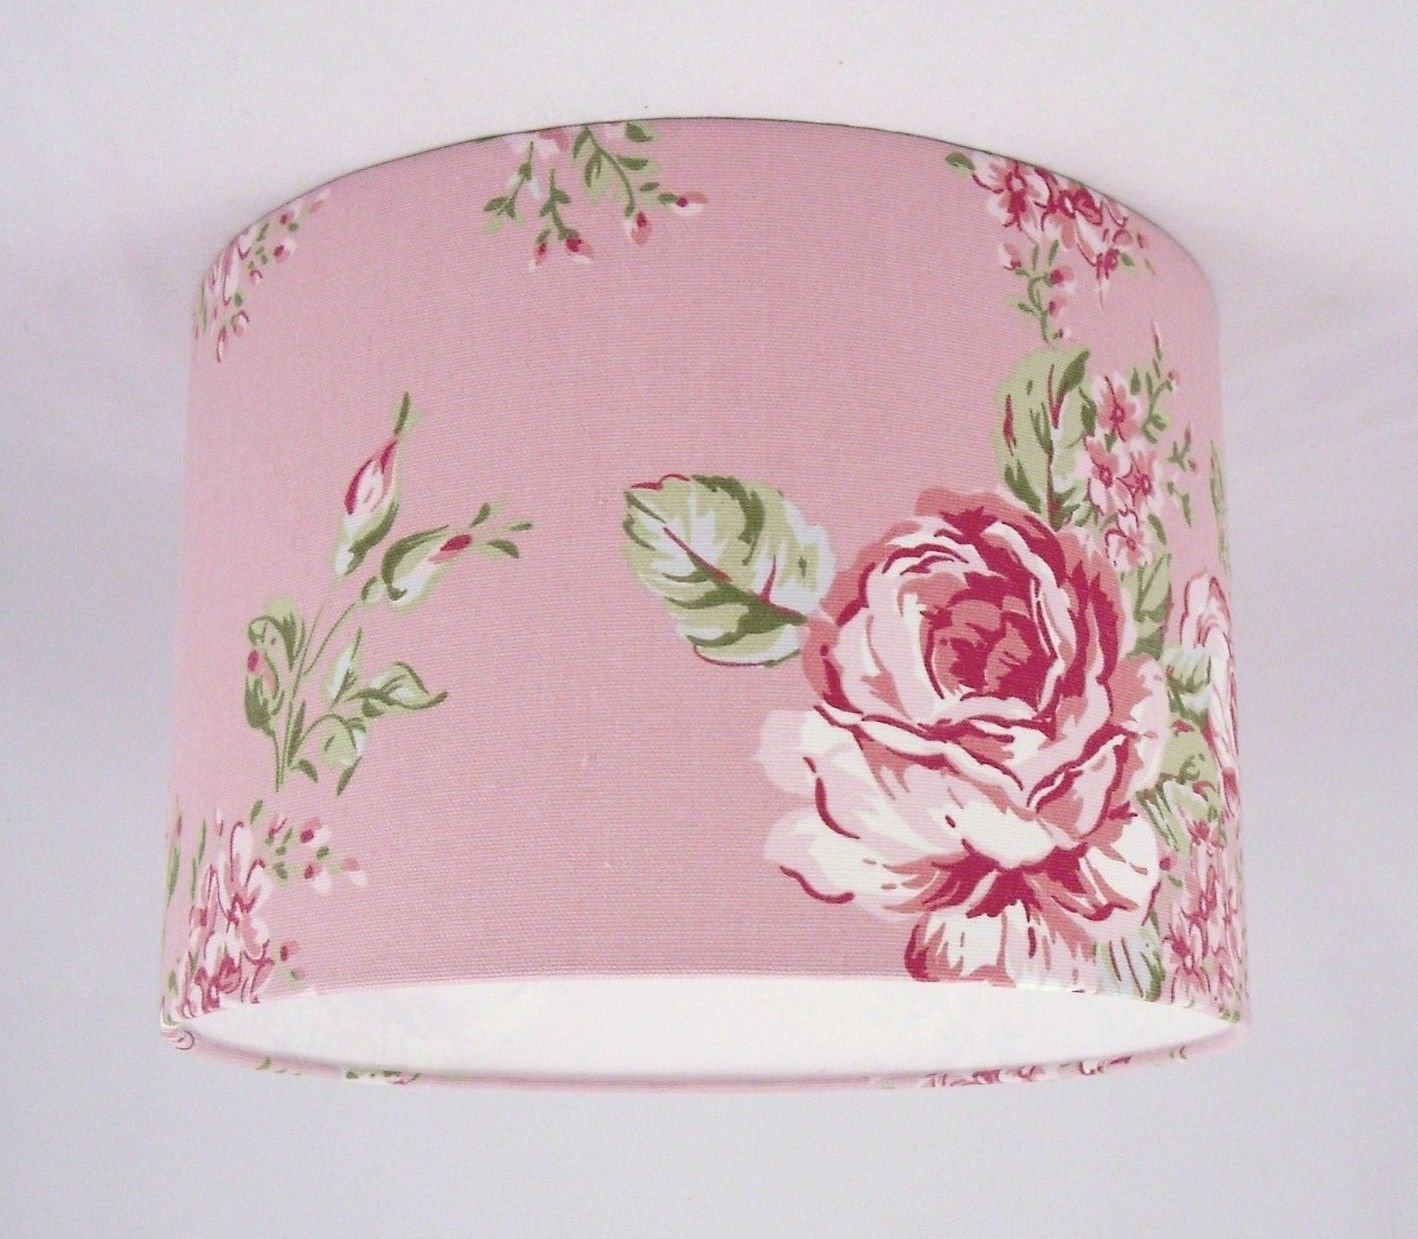 11 lampshade handmade in uk pink floral shabby chic vintage 11 lampshade handmade in uk pink floral shabby chic vintage lampshade amazon lighting aloadofball Choice Image